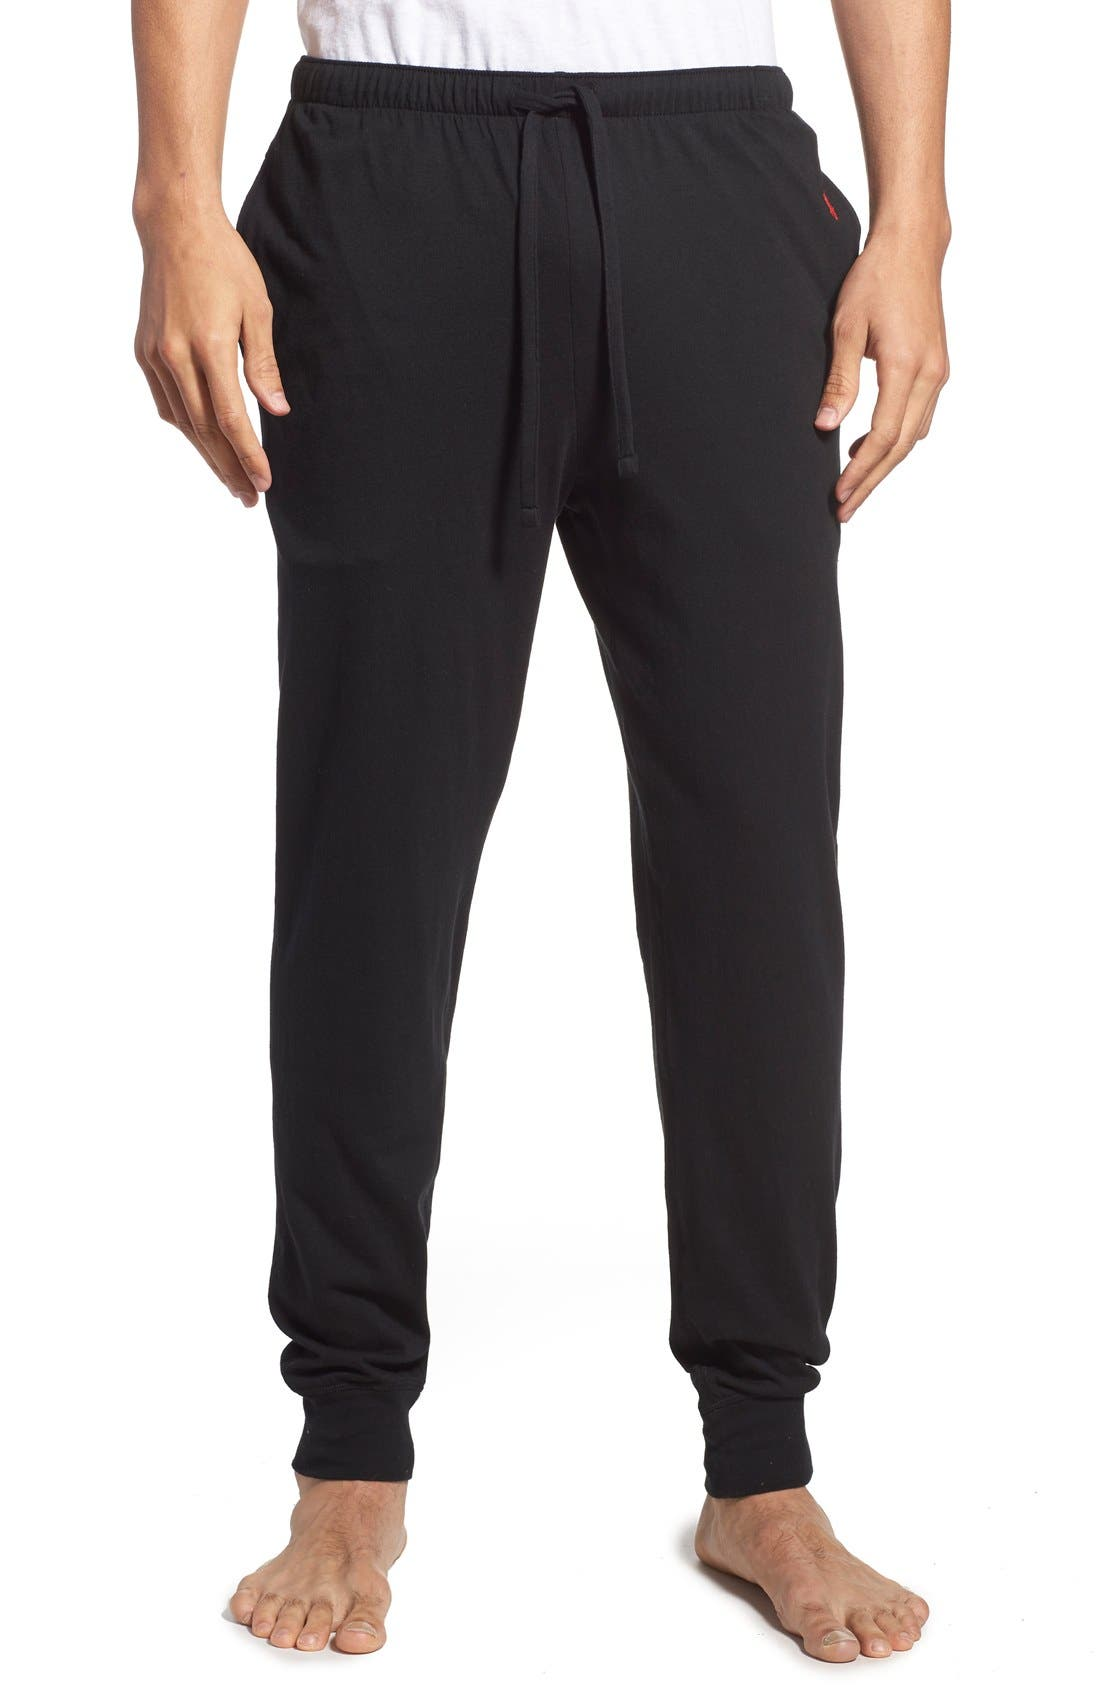 Alternate Image 1 Selected - Polo Ralph Lauren Relaxed Fit Cotton Knit Lounge Jogger Pants